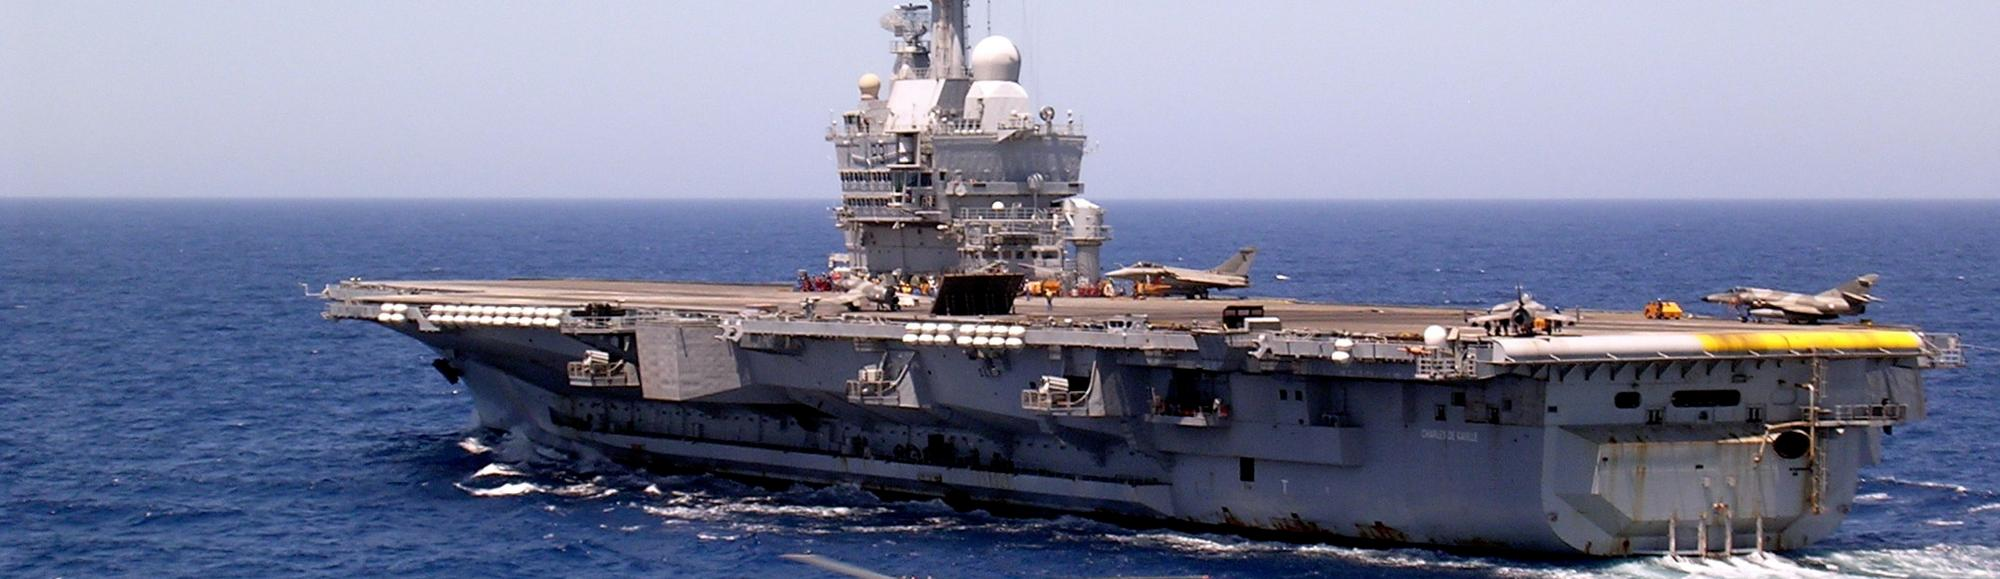 France Expected to Send Its Largest Warship to the Gulf to Fight the Islamic State